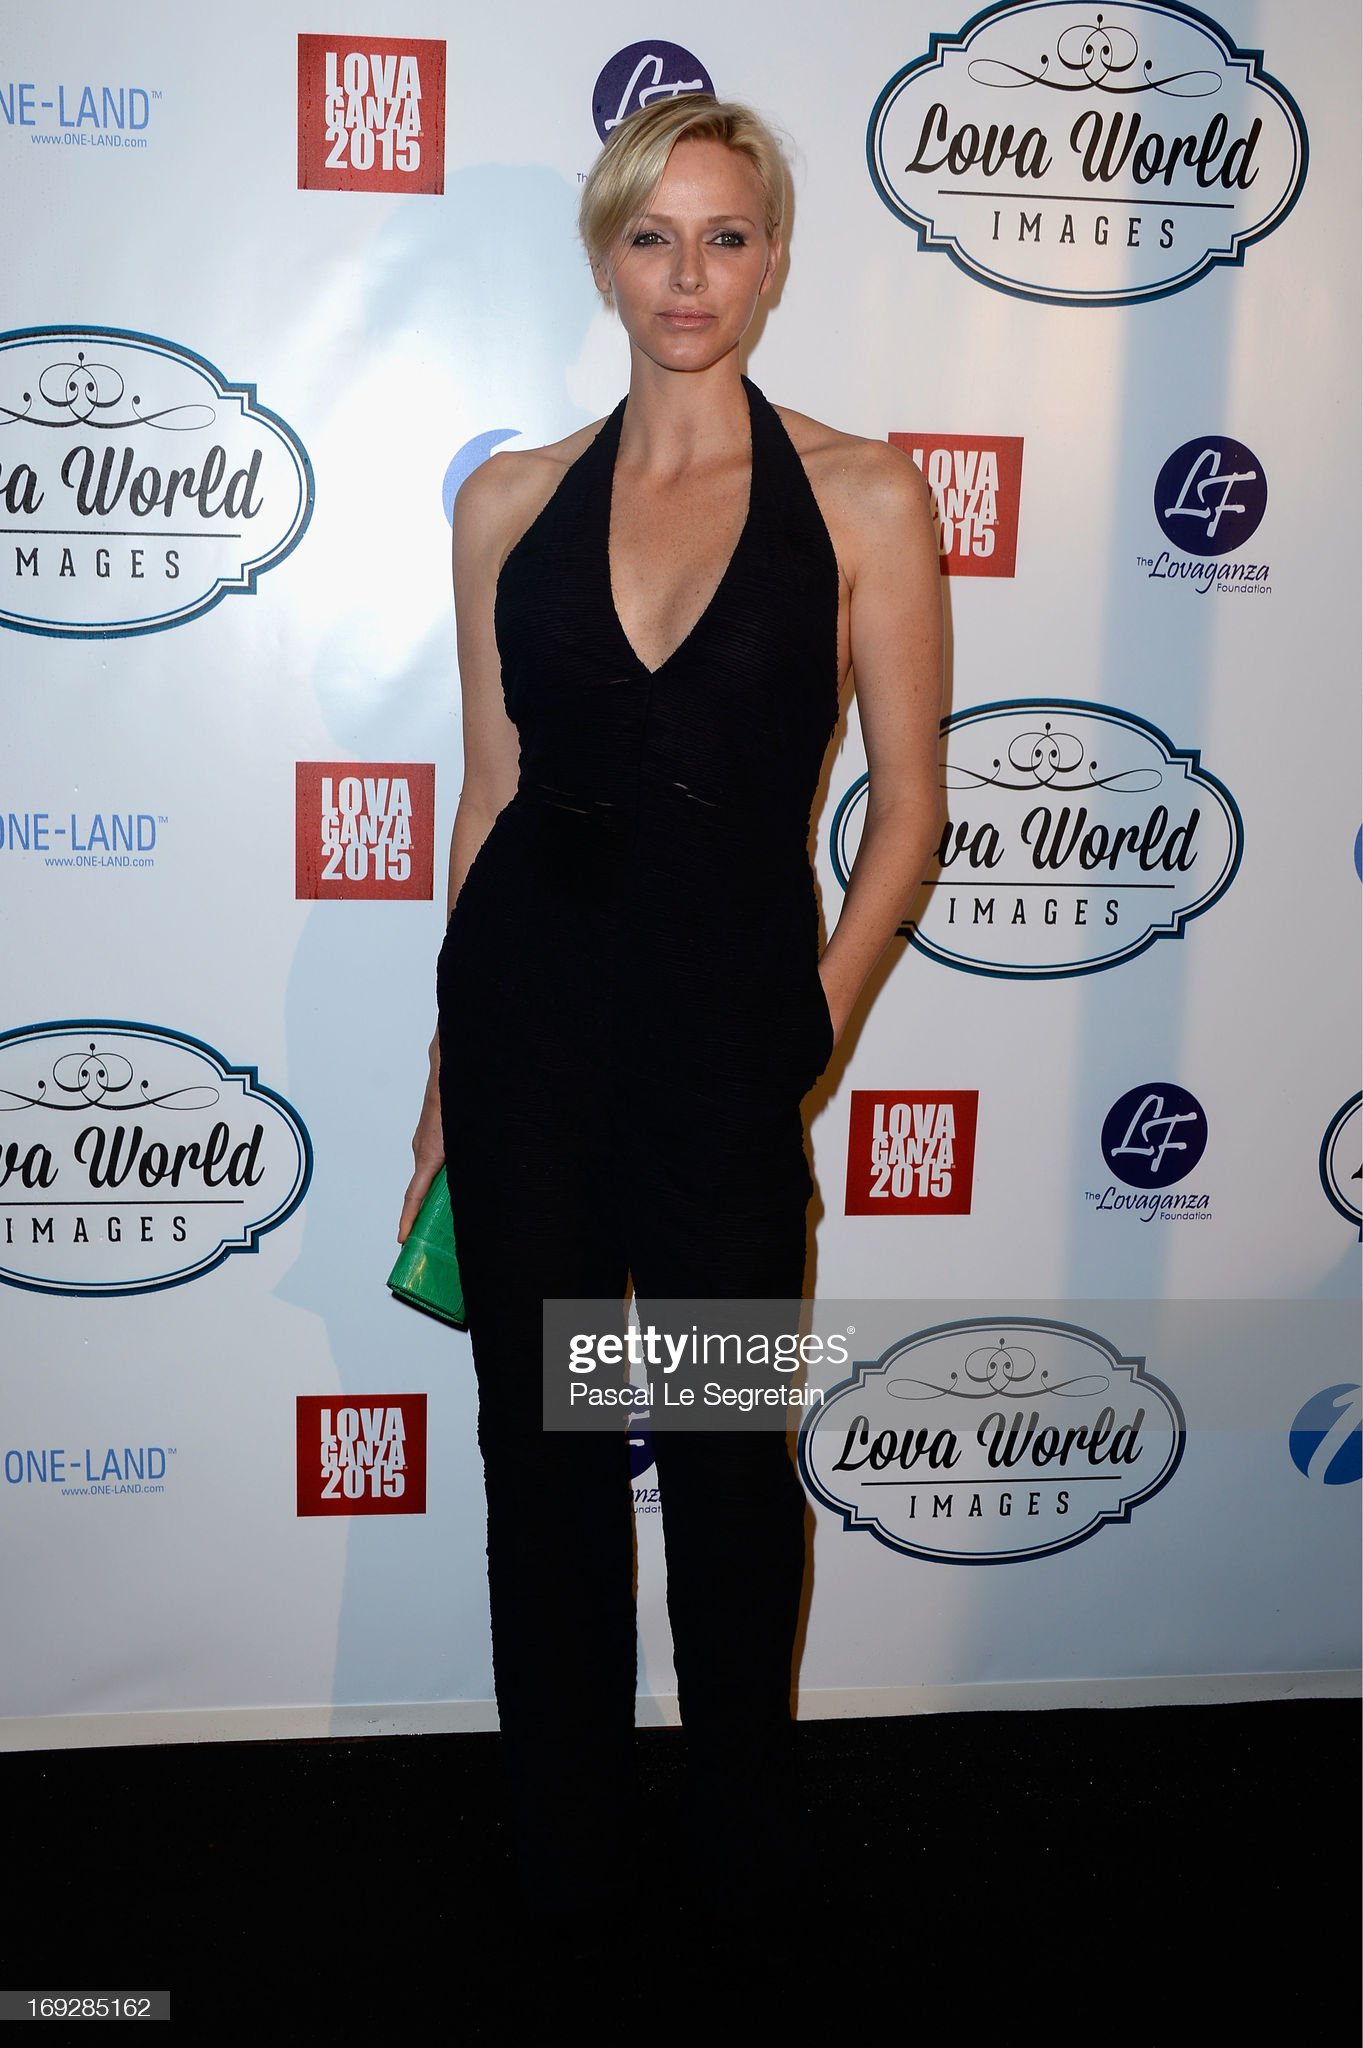 Lova World Images Closing Party - The 66th Annual Cannes Film Festival : News Photo